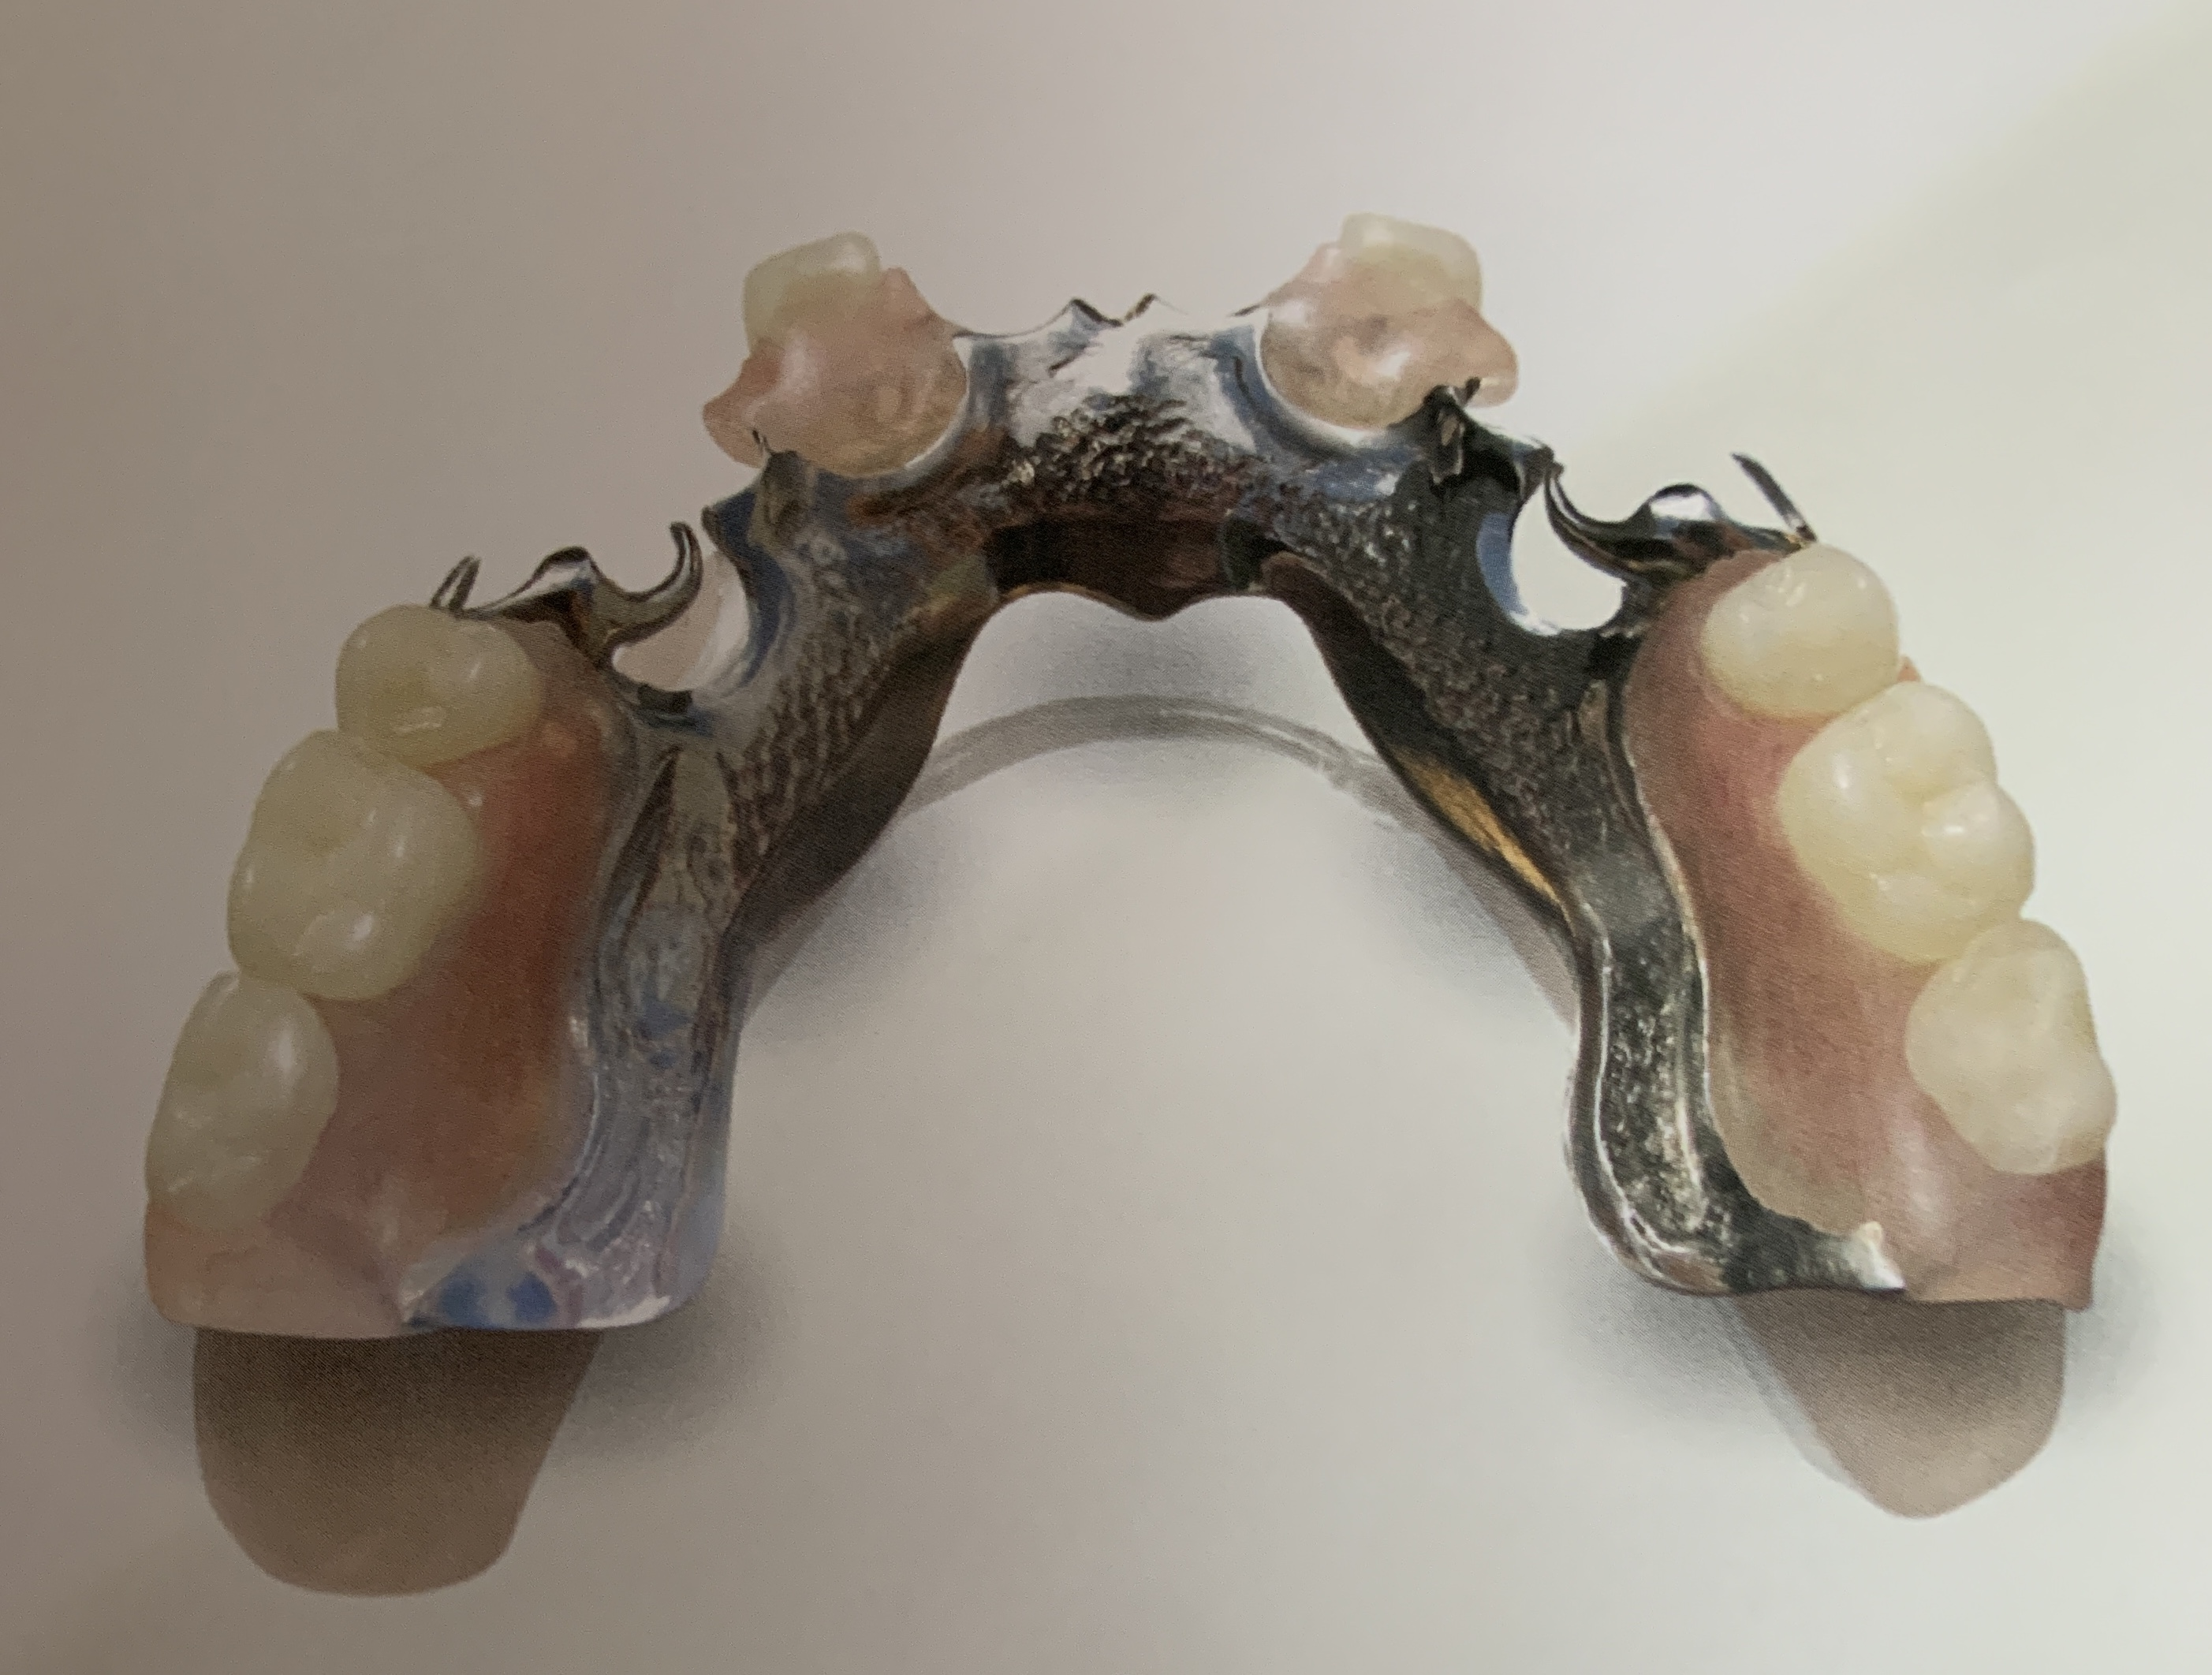 Dentures in Reston, VA